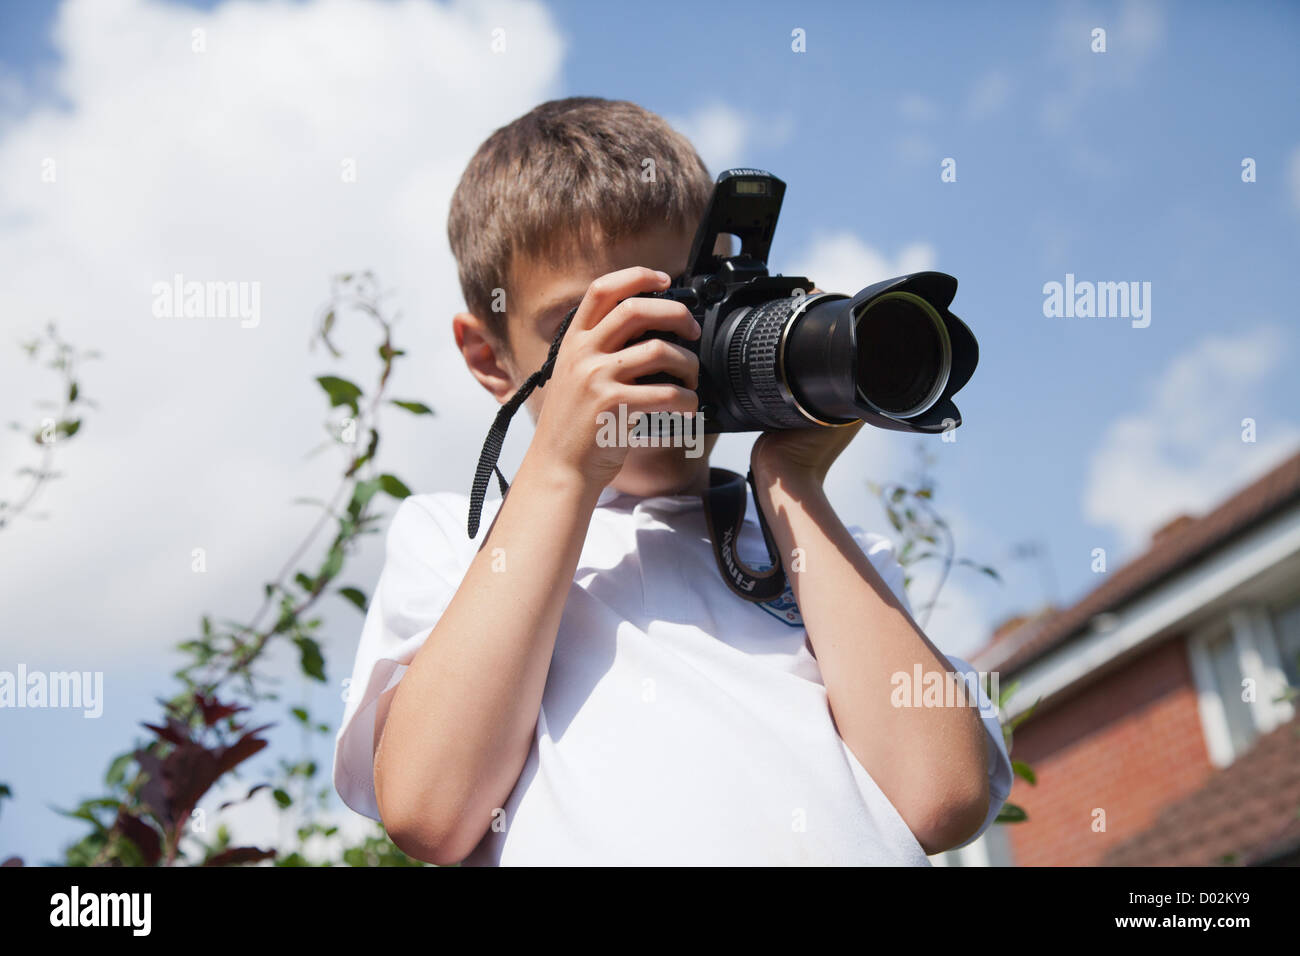 Young photographer taking photographs - Stock Image